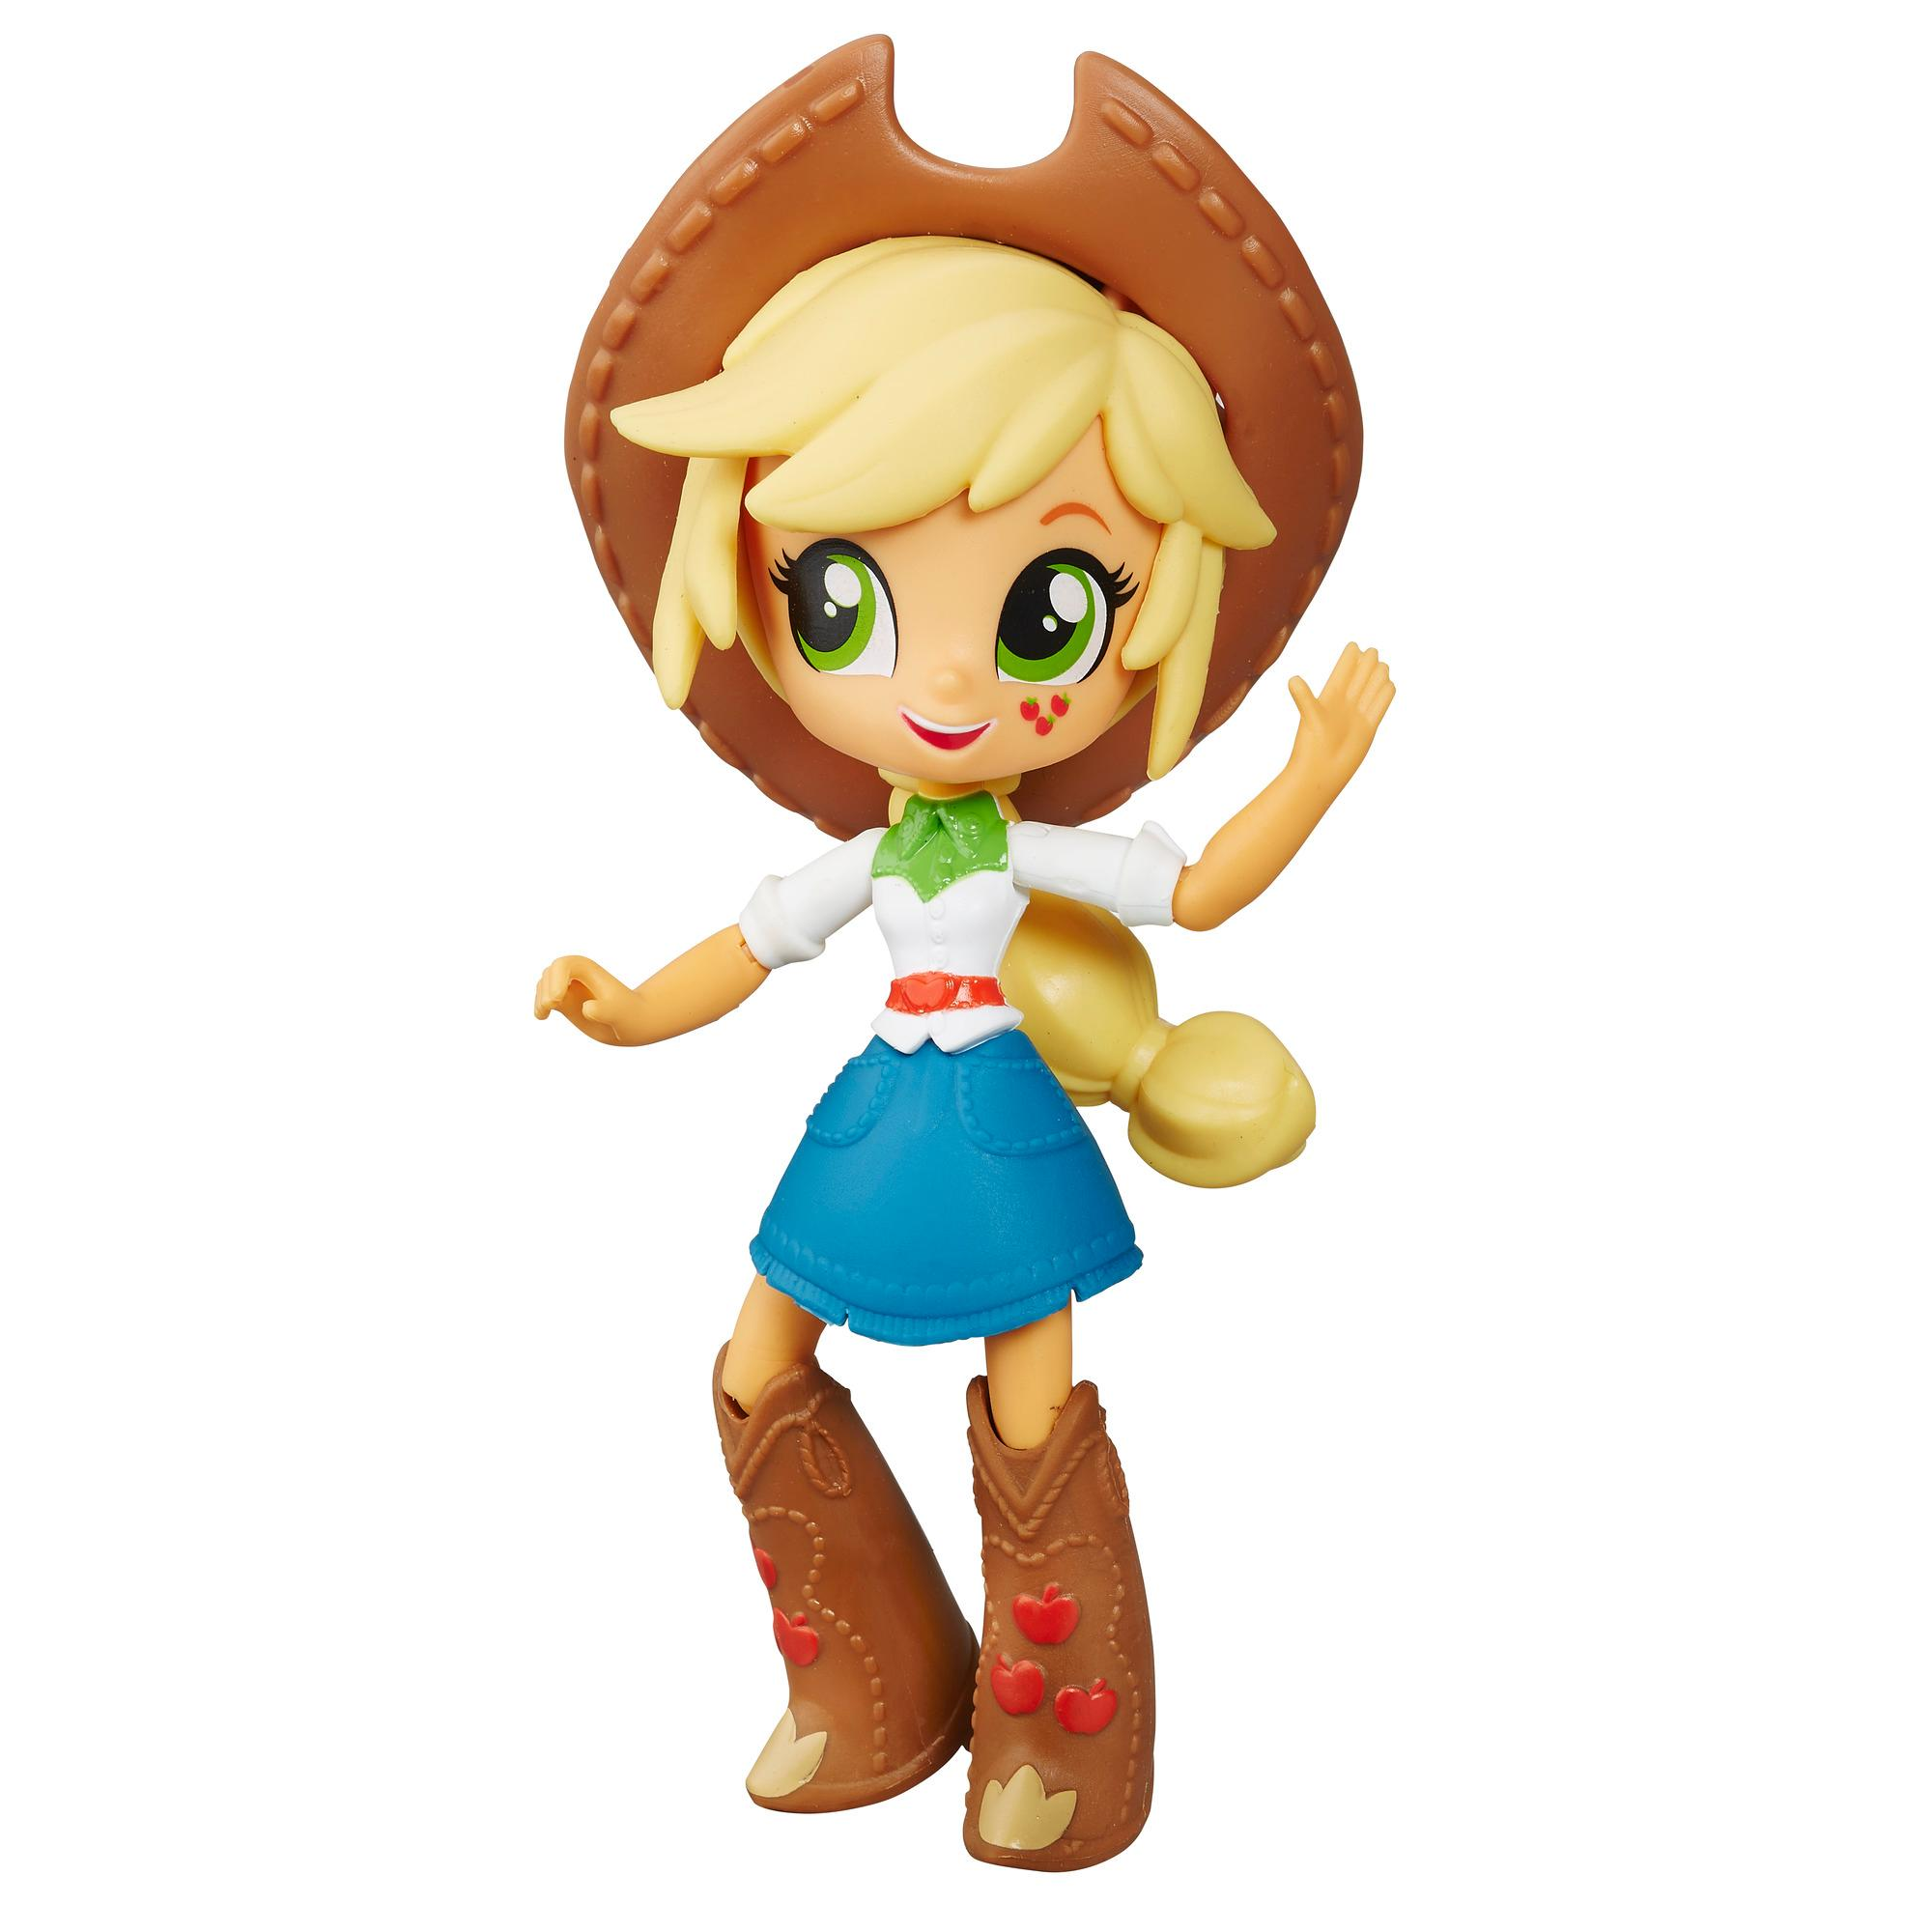 My Little Pony Equestria Girls Minis Applejack Doll.